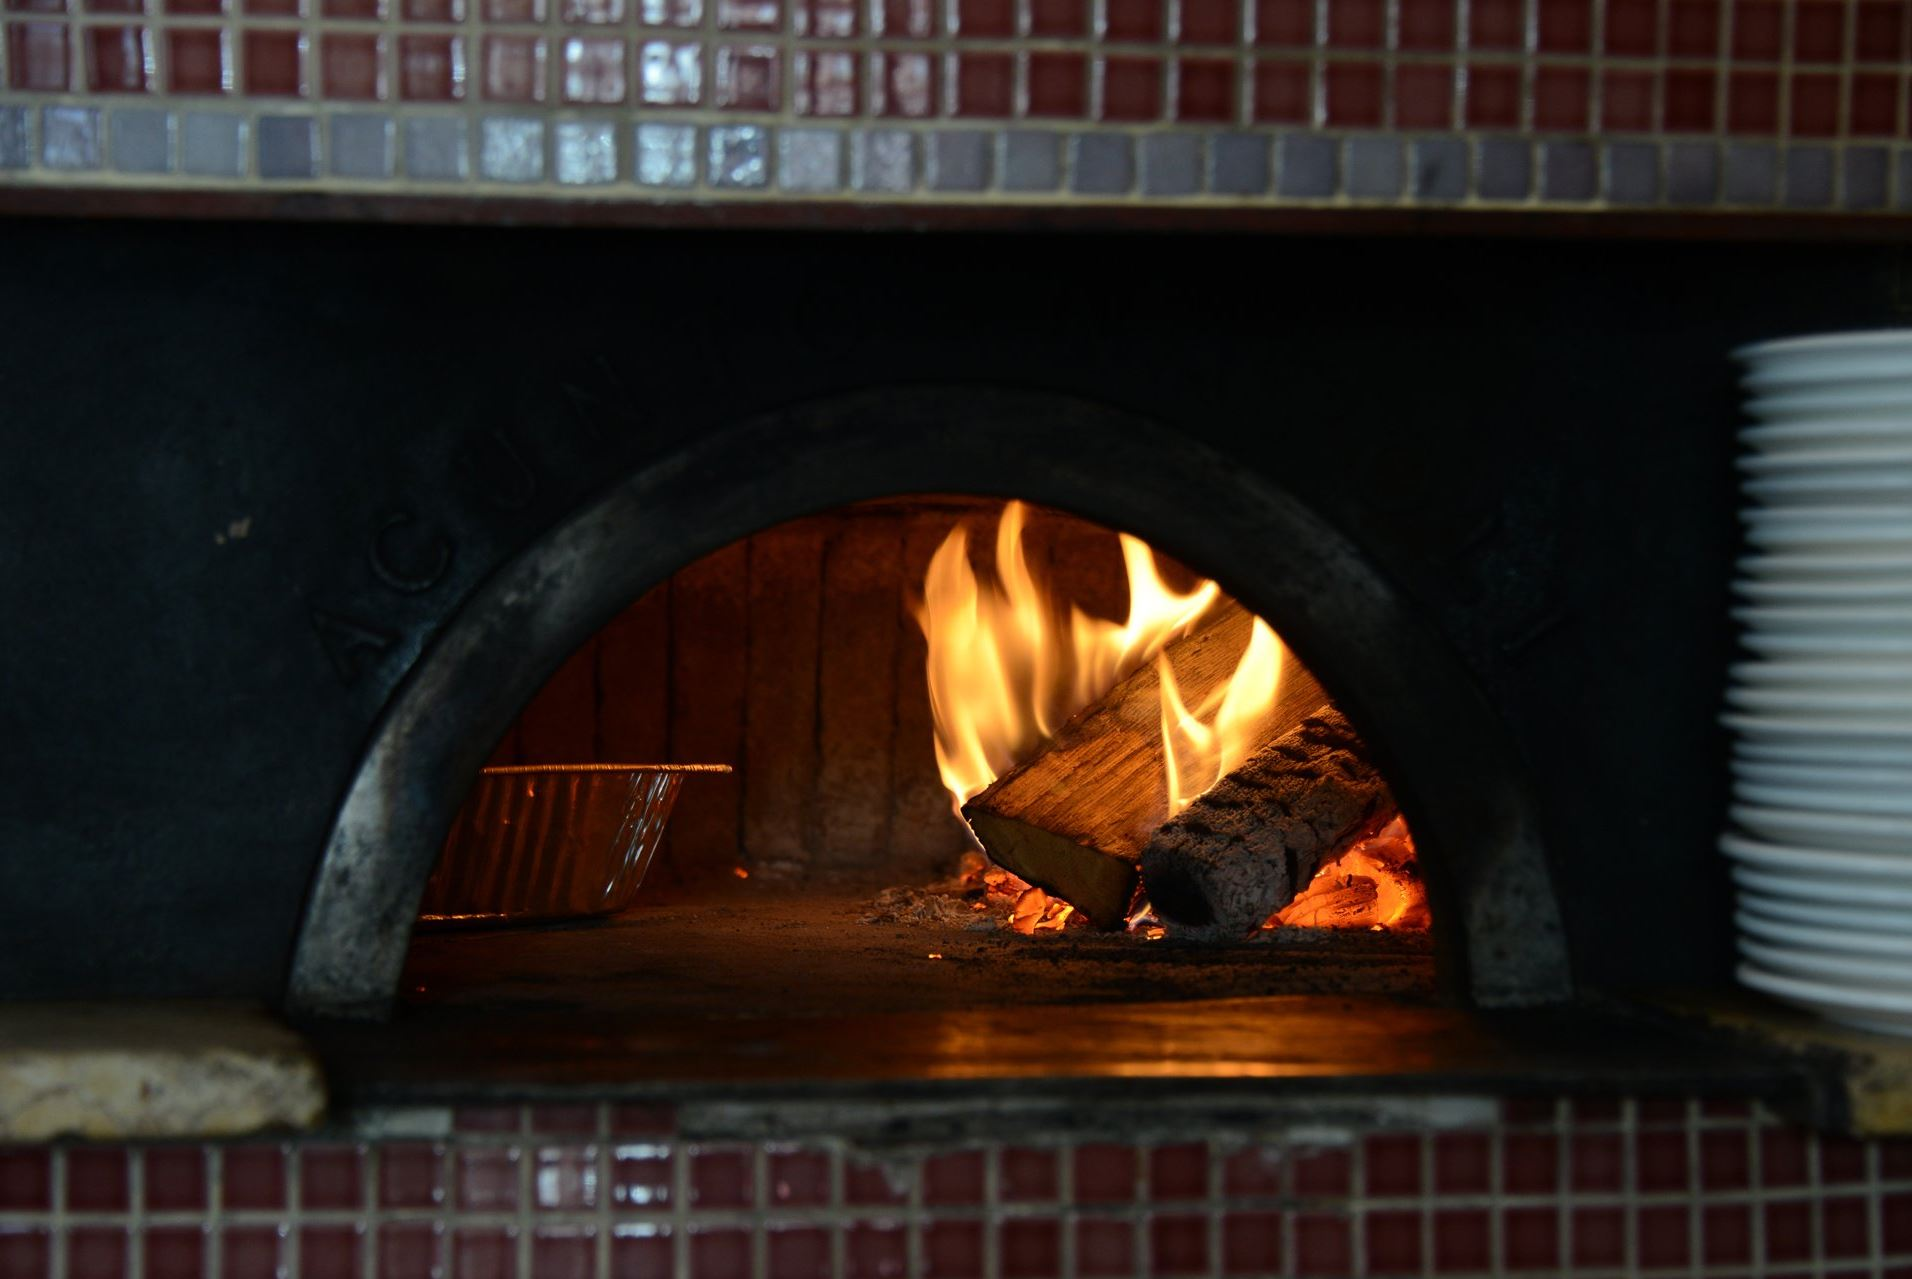 wood fired ovens face tough regulations in pittsburgh pittsburgh